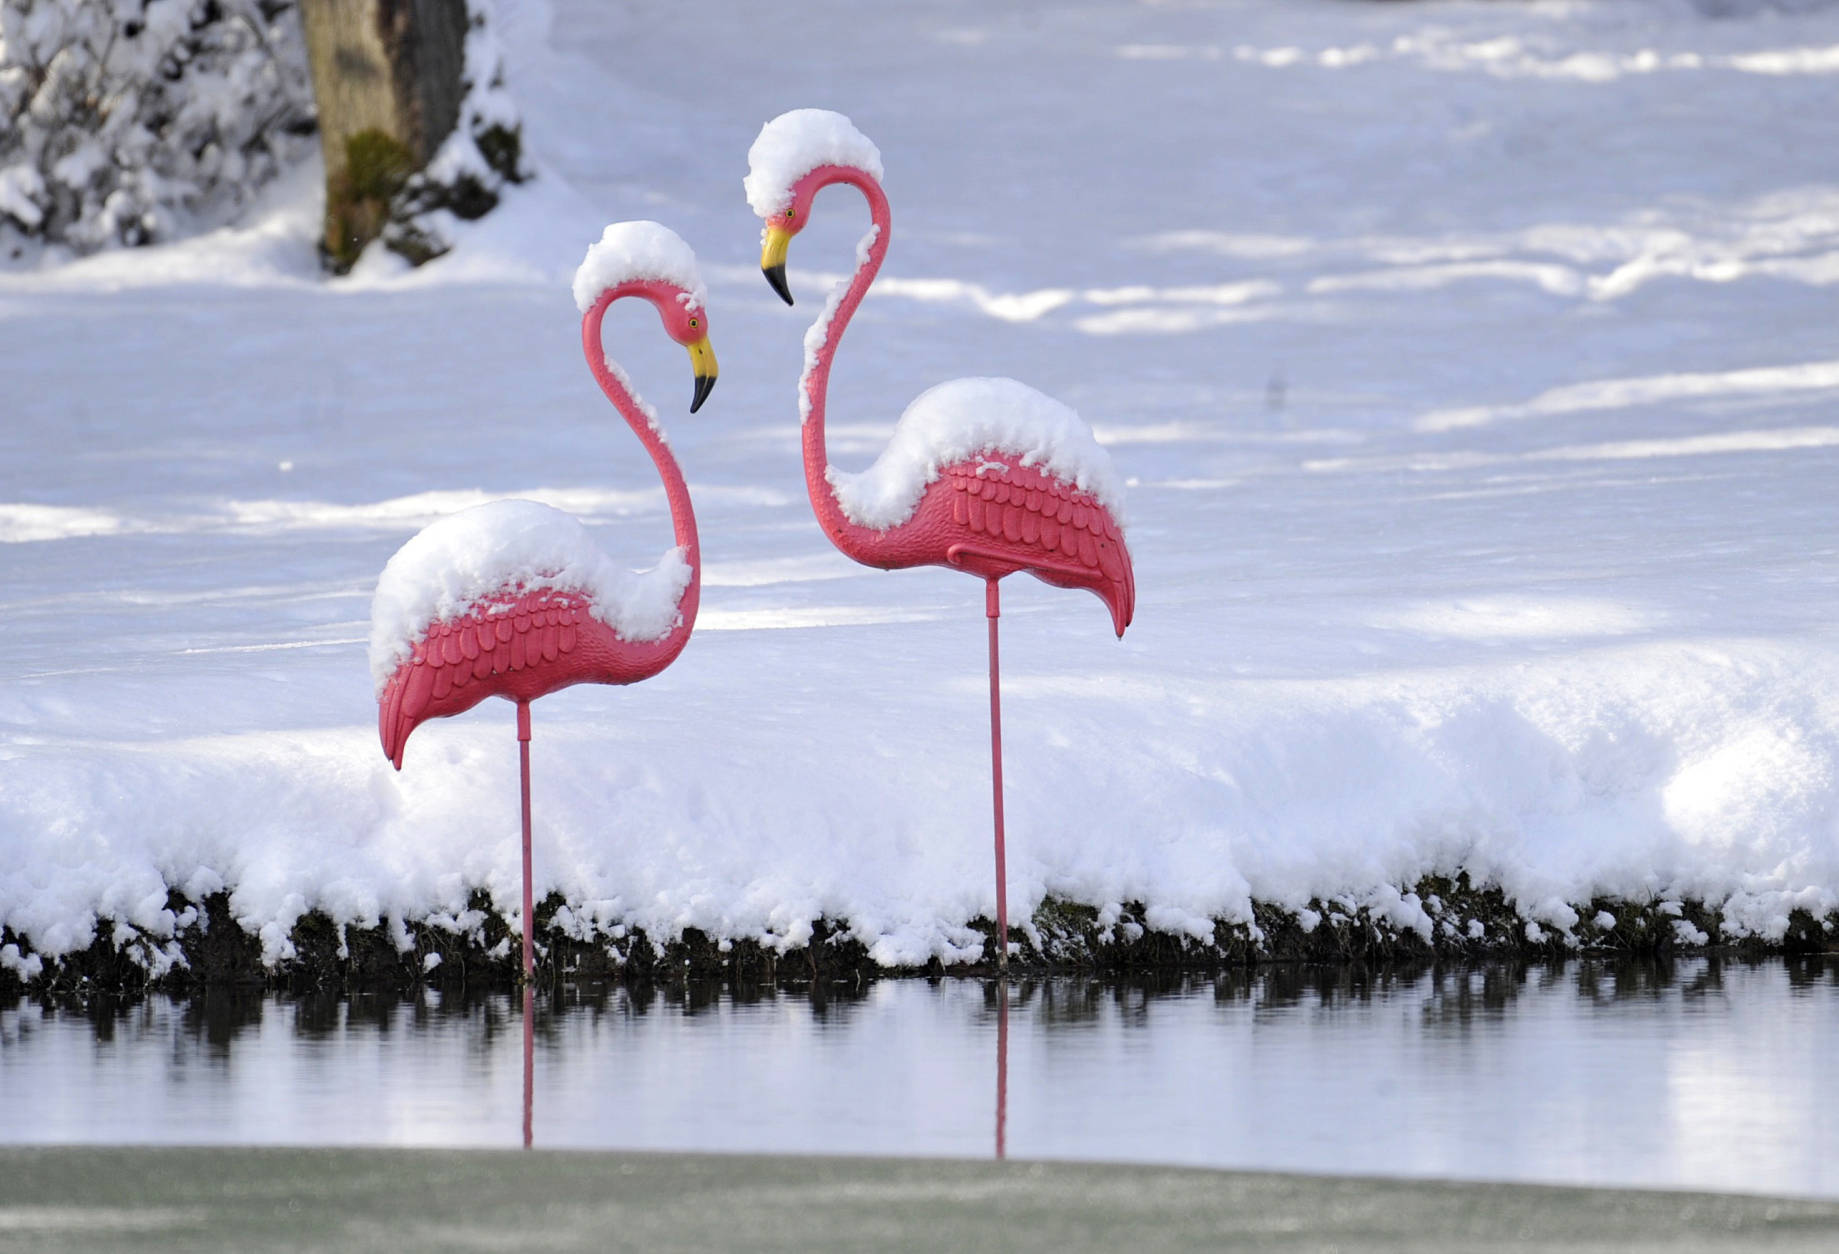 These two snow covered plastic flamingo's stand near a pond outside of Johnstown, Pa., Wednesday, Dec. 14, 2016. Weather forecasters are calling for an Arctic blast coming to western Pennsylvania on Thursday and lasting through Friday. (Todd Berkey/The Tribune-Democrat via AP)